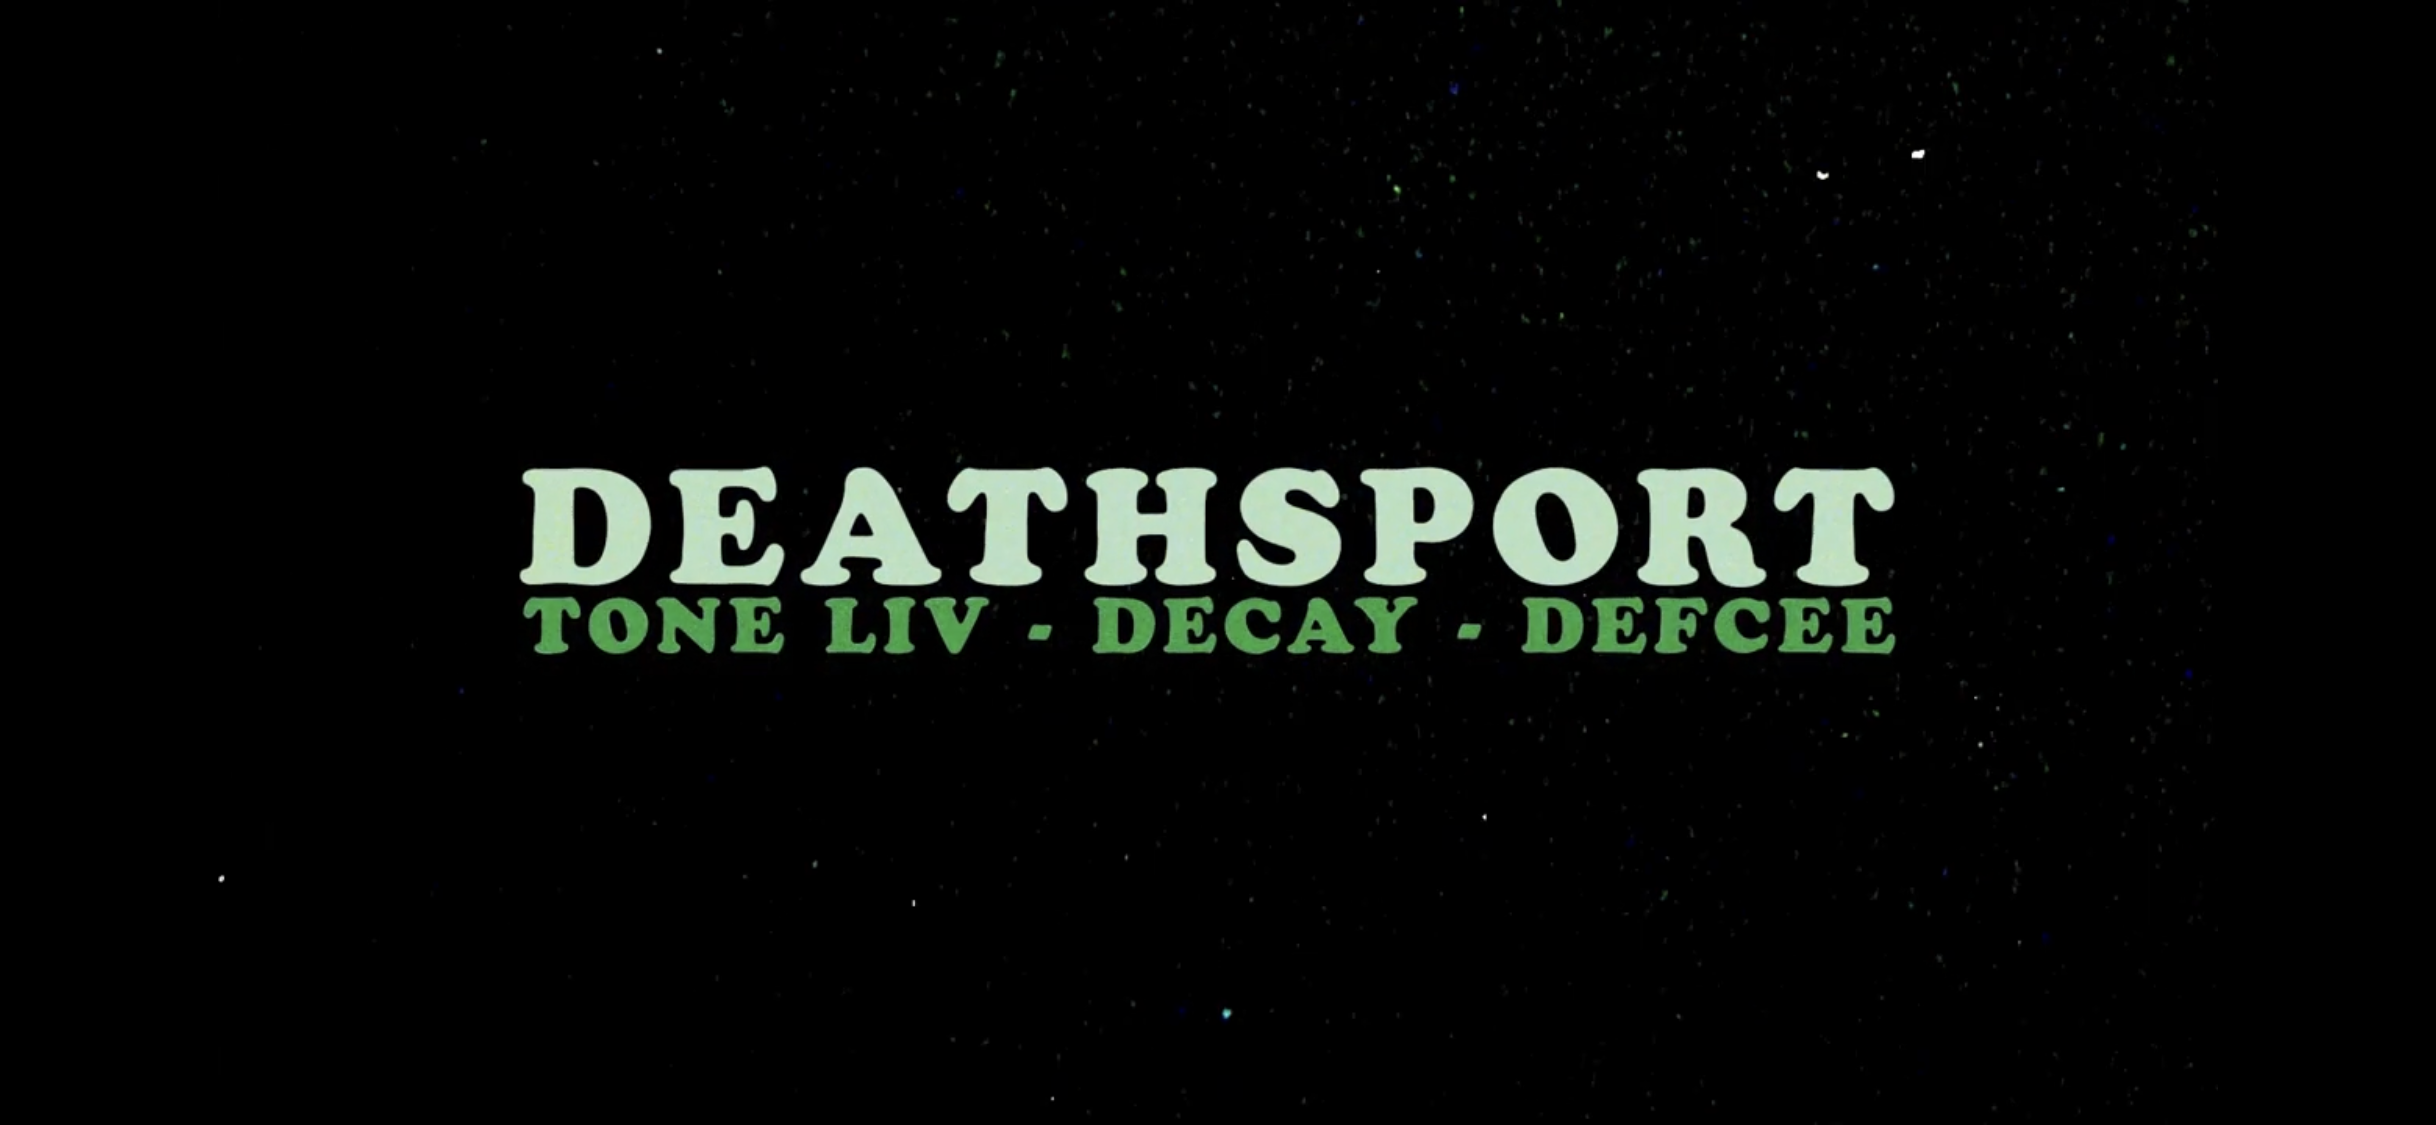 Tone Liv & Decay, the Llama - Deathsport (Animated video)